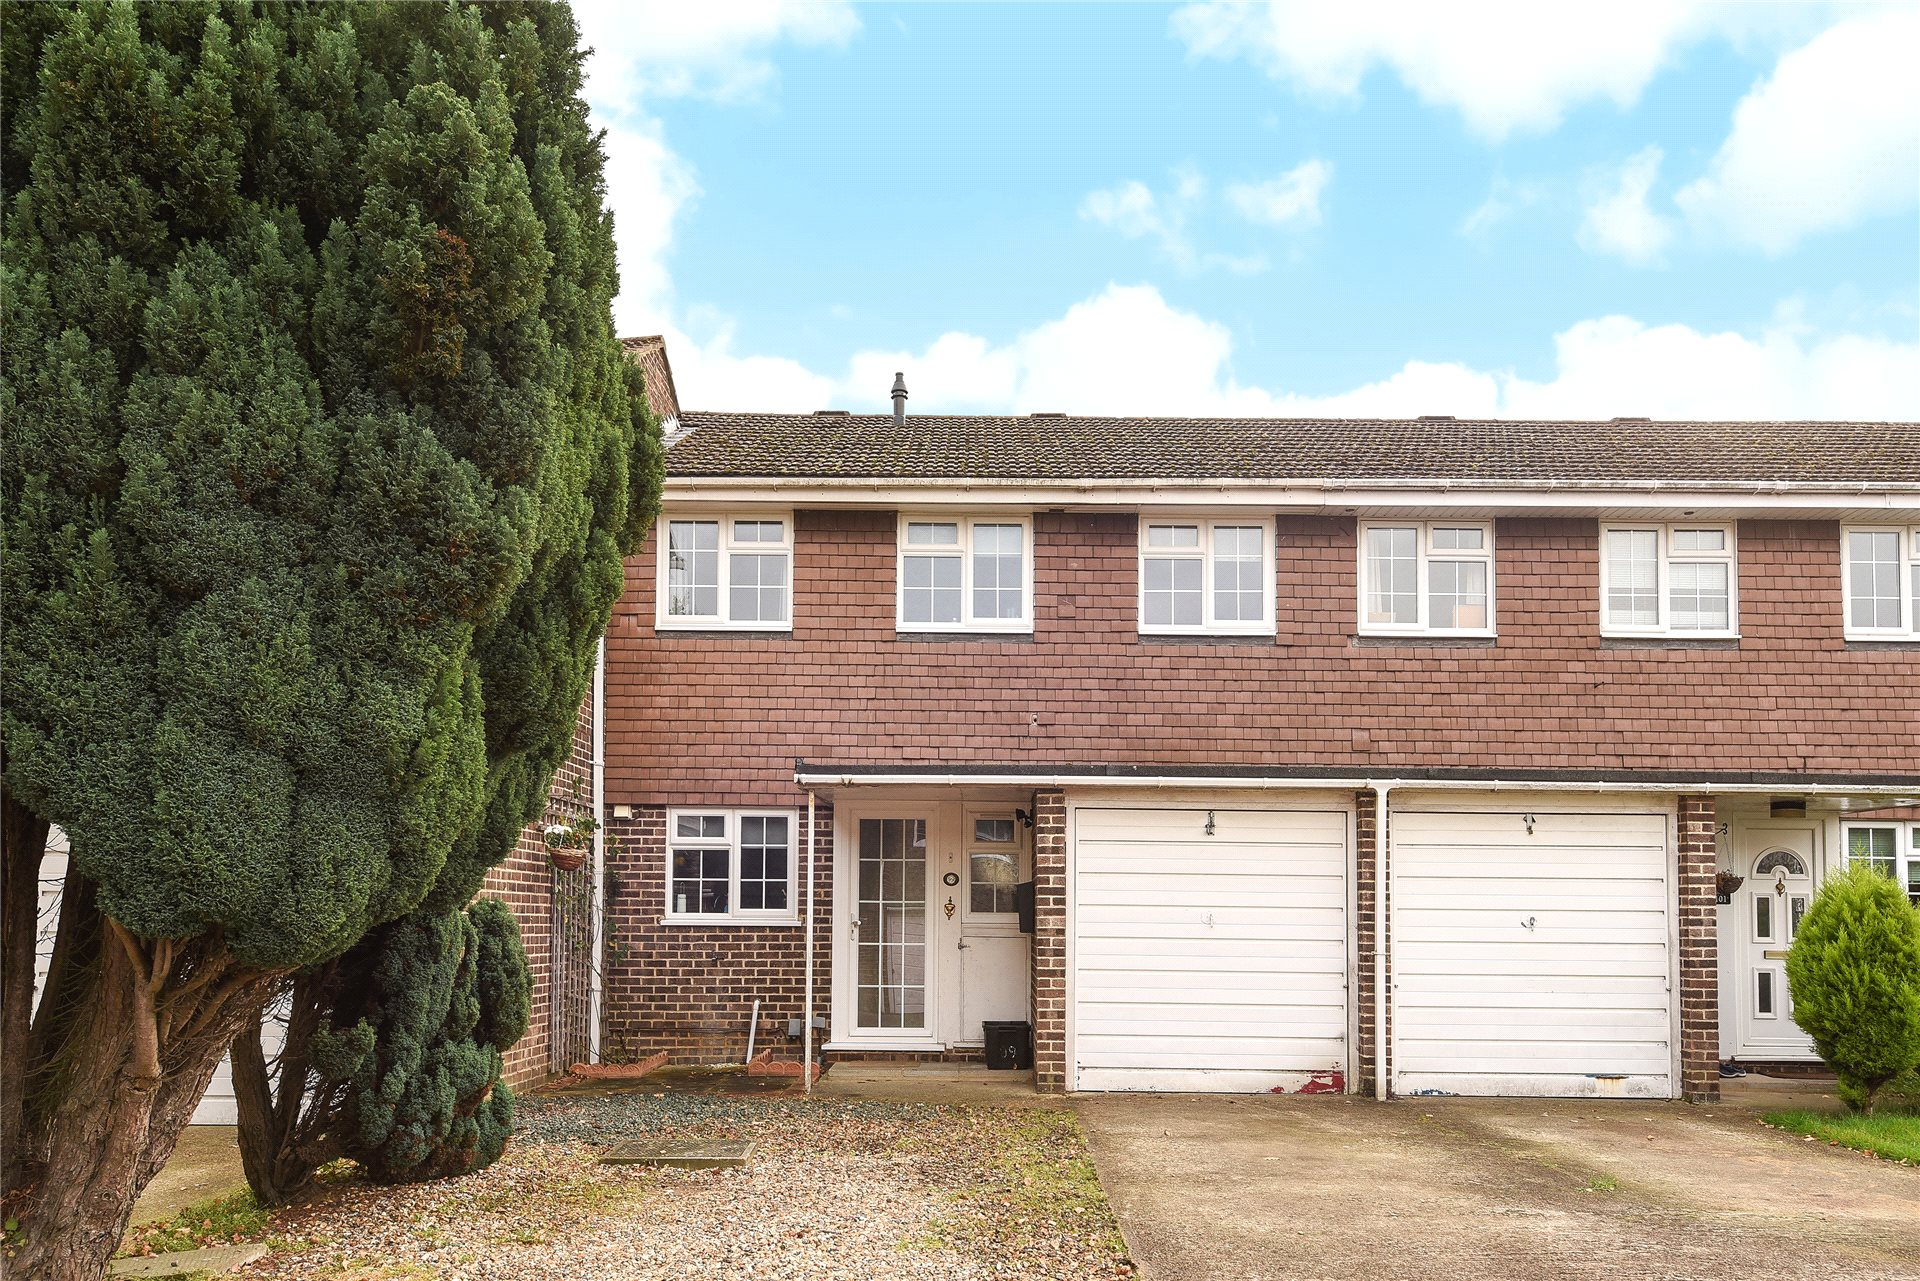 4 Bedrooms Terraced House for sale in Bathurst Road, Winnersh, Wokingham, Berkshire, RG41